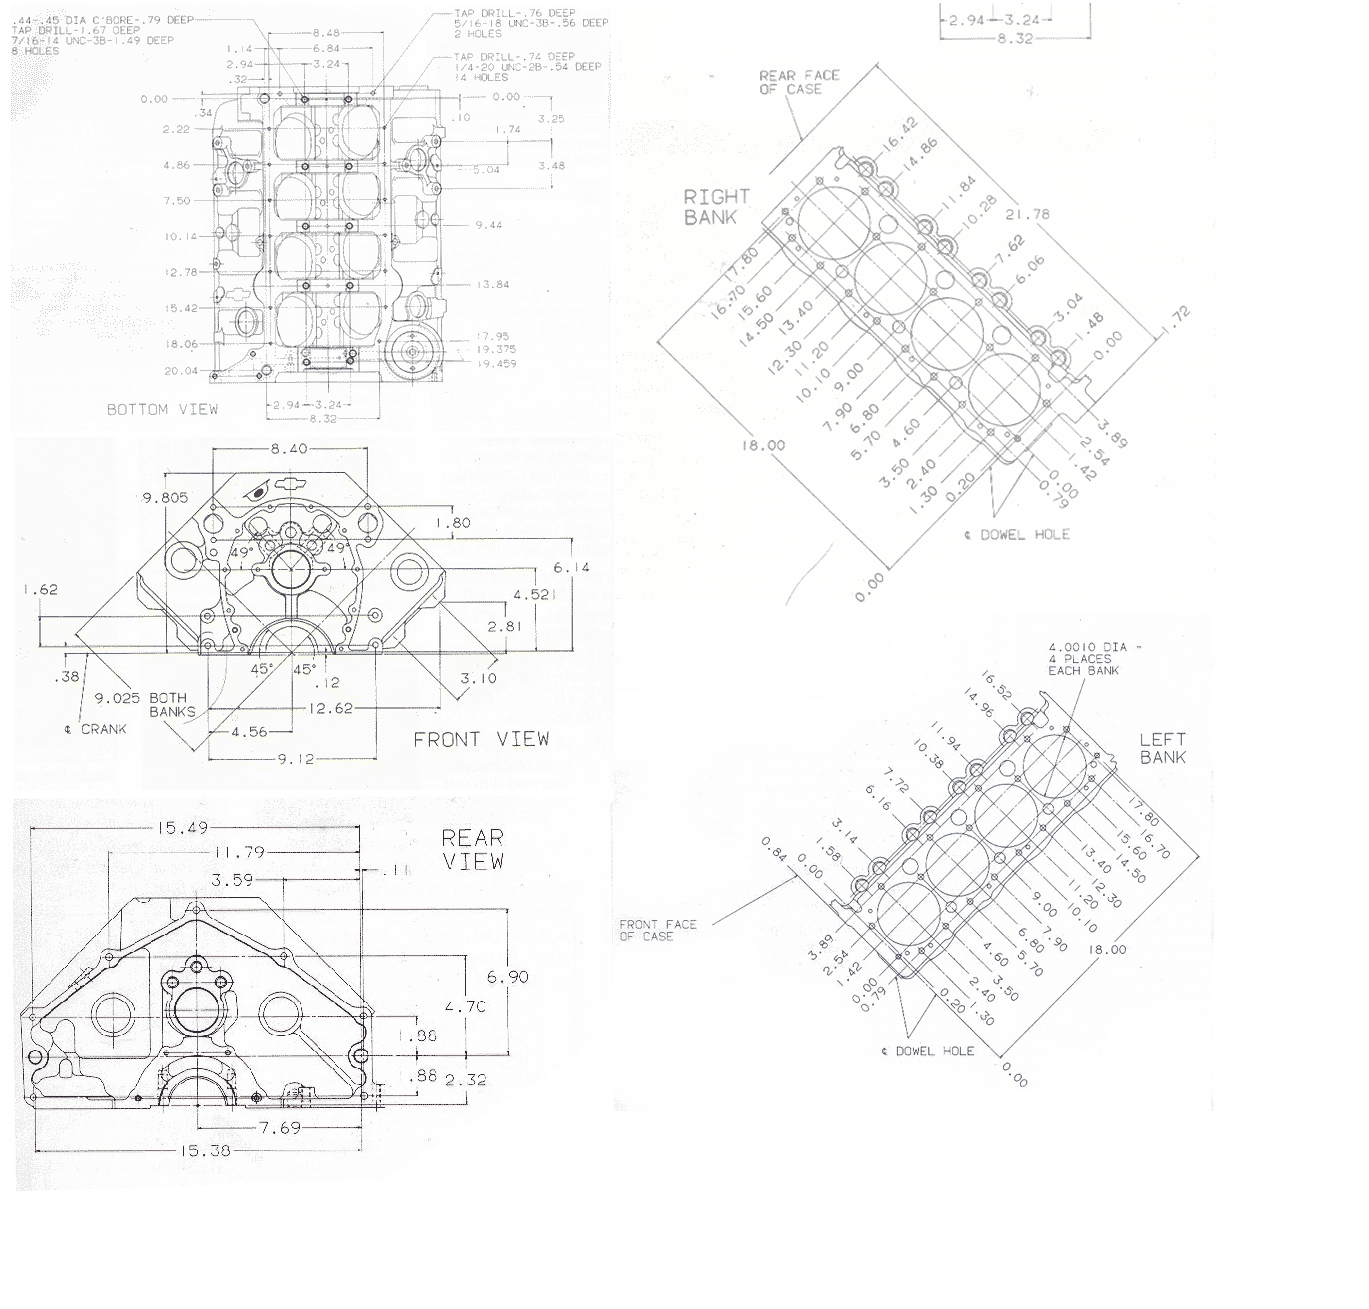 Sbc Drawings Or Cad Files